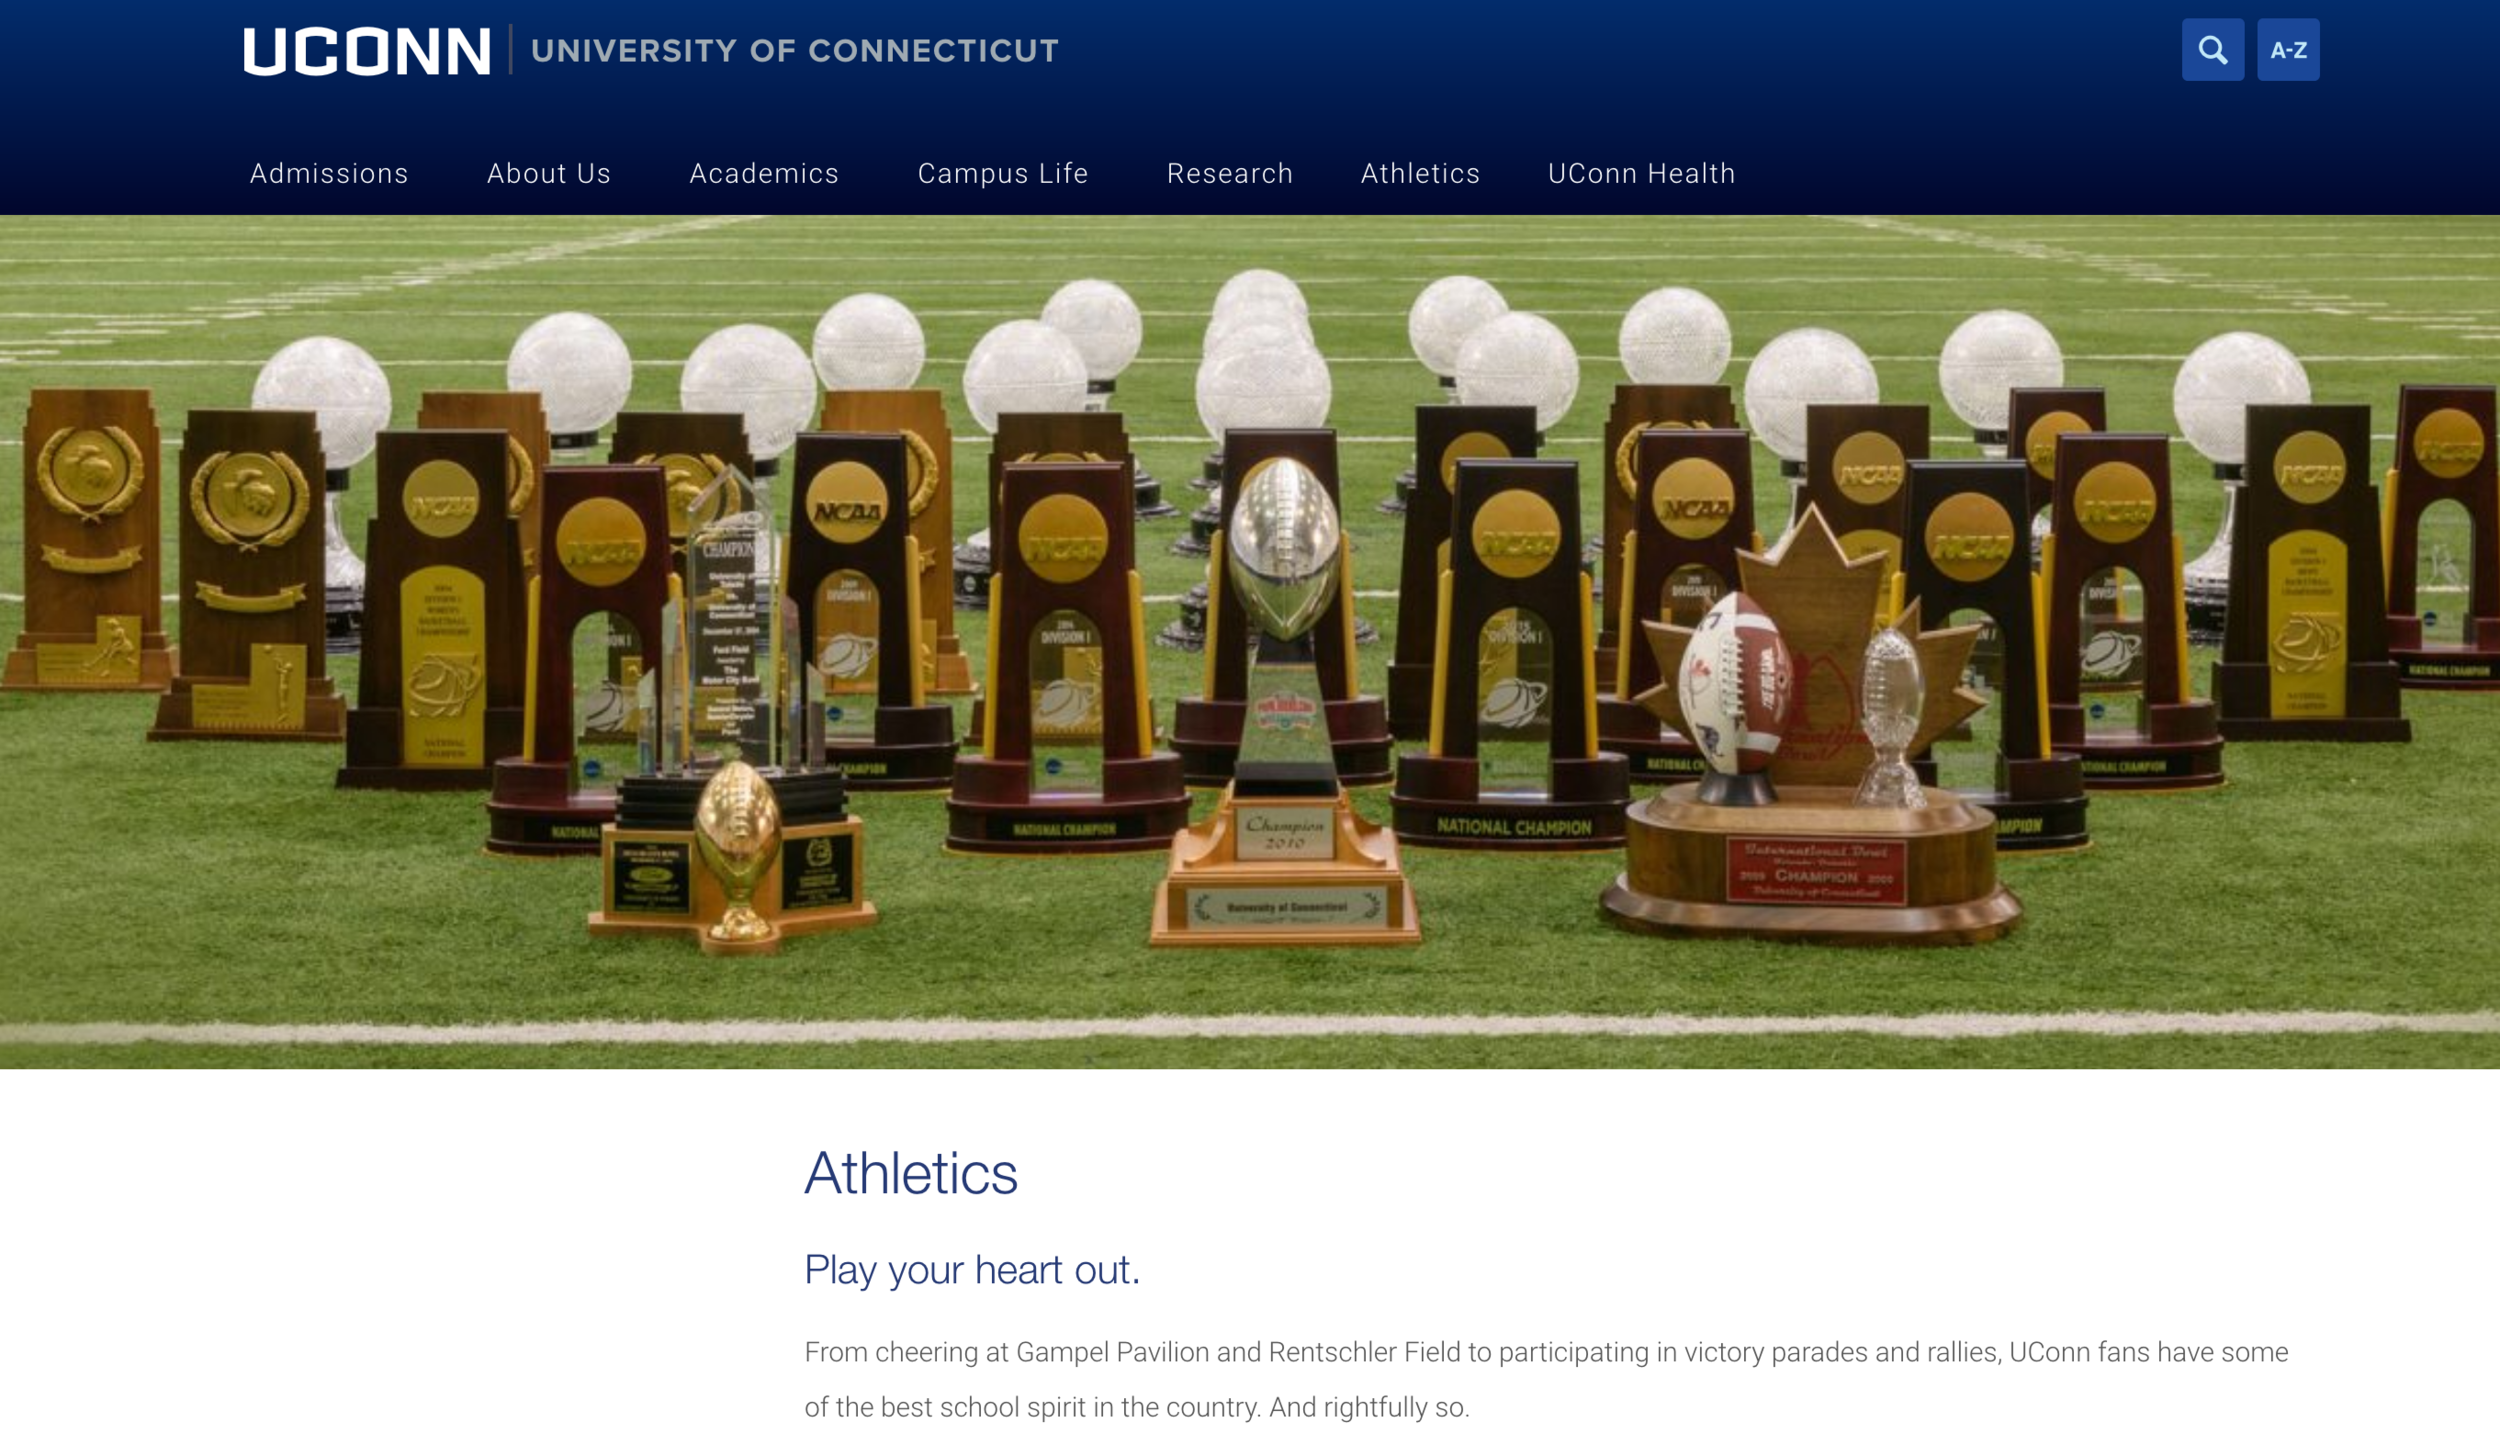 There is no easy way to pull UConn athletics out of the hole it has dug itself into with this absurdly large deficit. However, it is clear that the issue stems from a variety of causes, one of the main ones being the unsuccessful conference that we are currently in. (Screenshot of website)